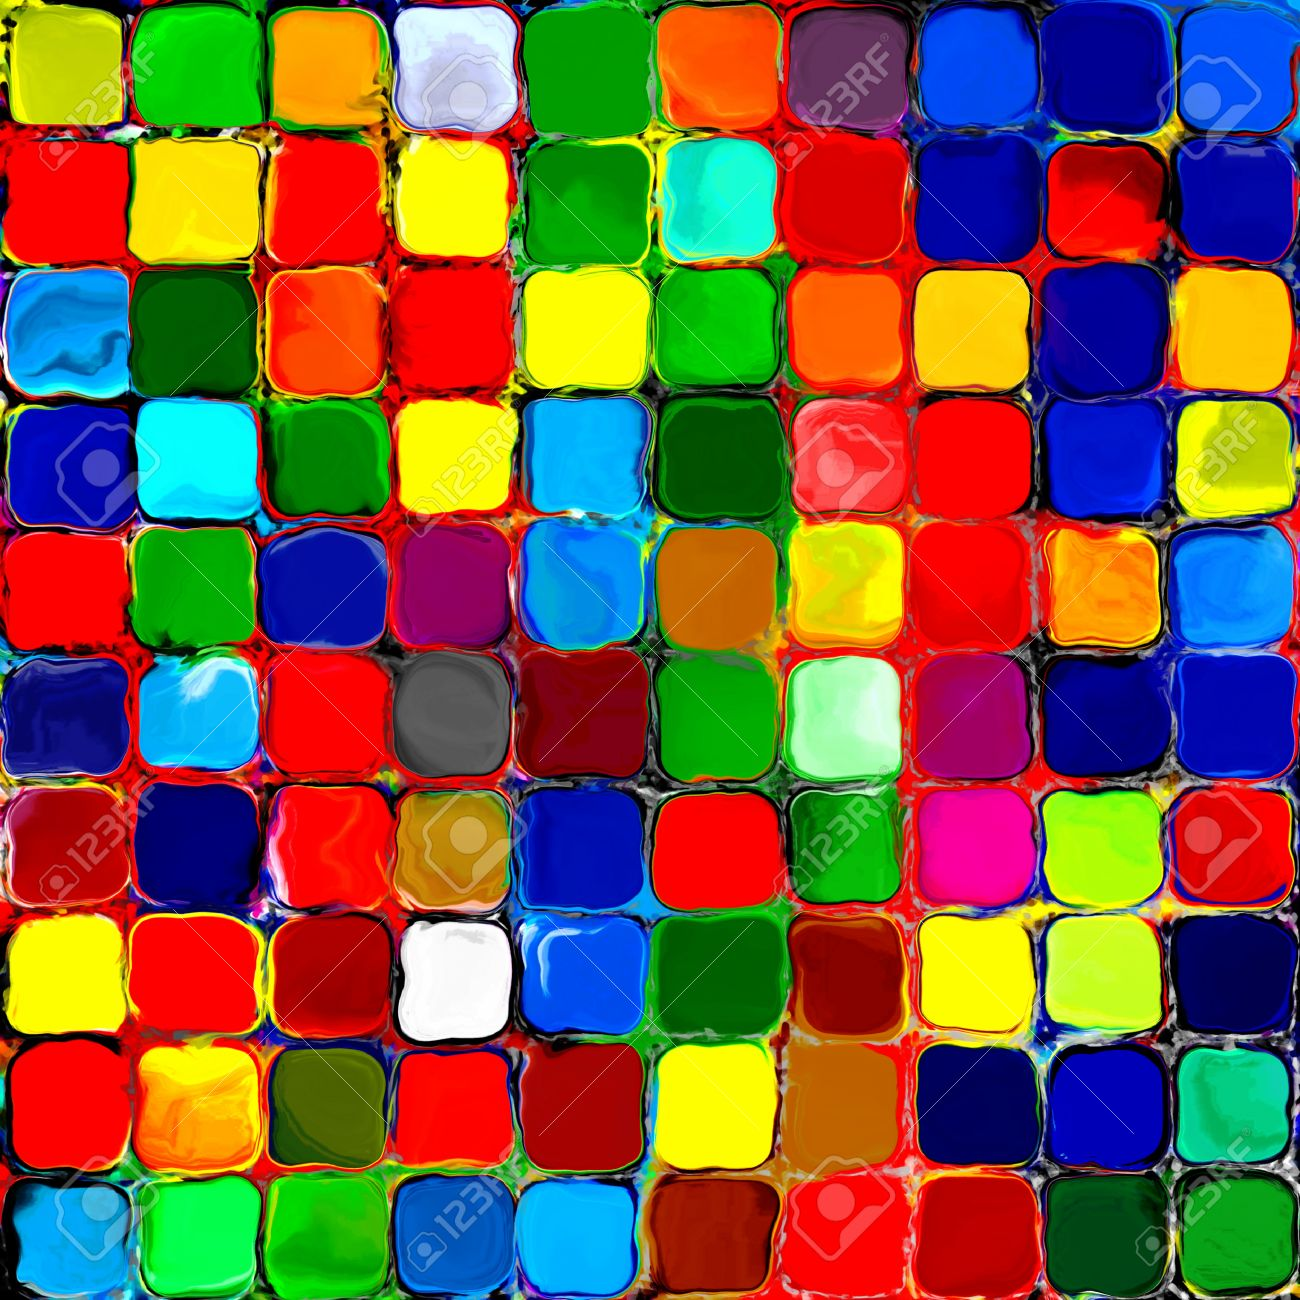 Abstract Rainbow Colorful Tiles Mozaic Painting Geometric Pallette ...